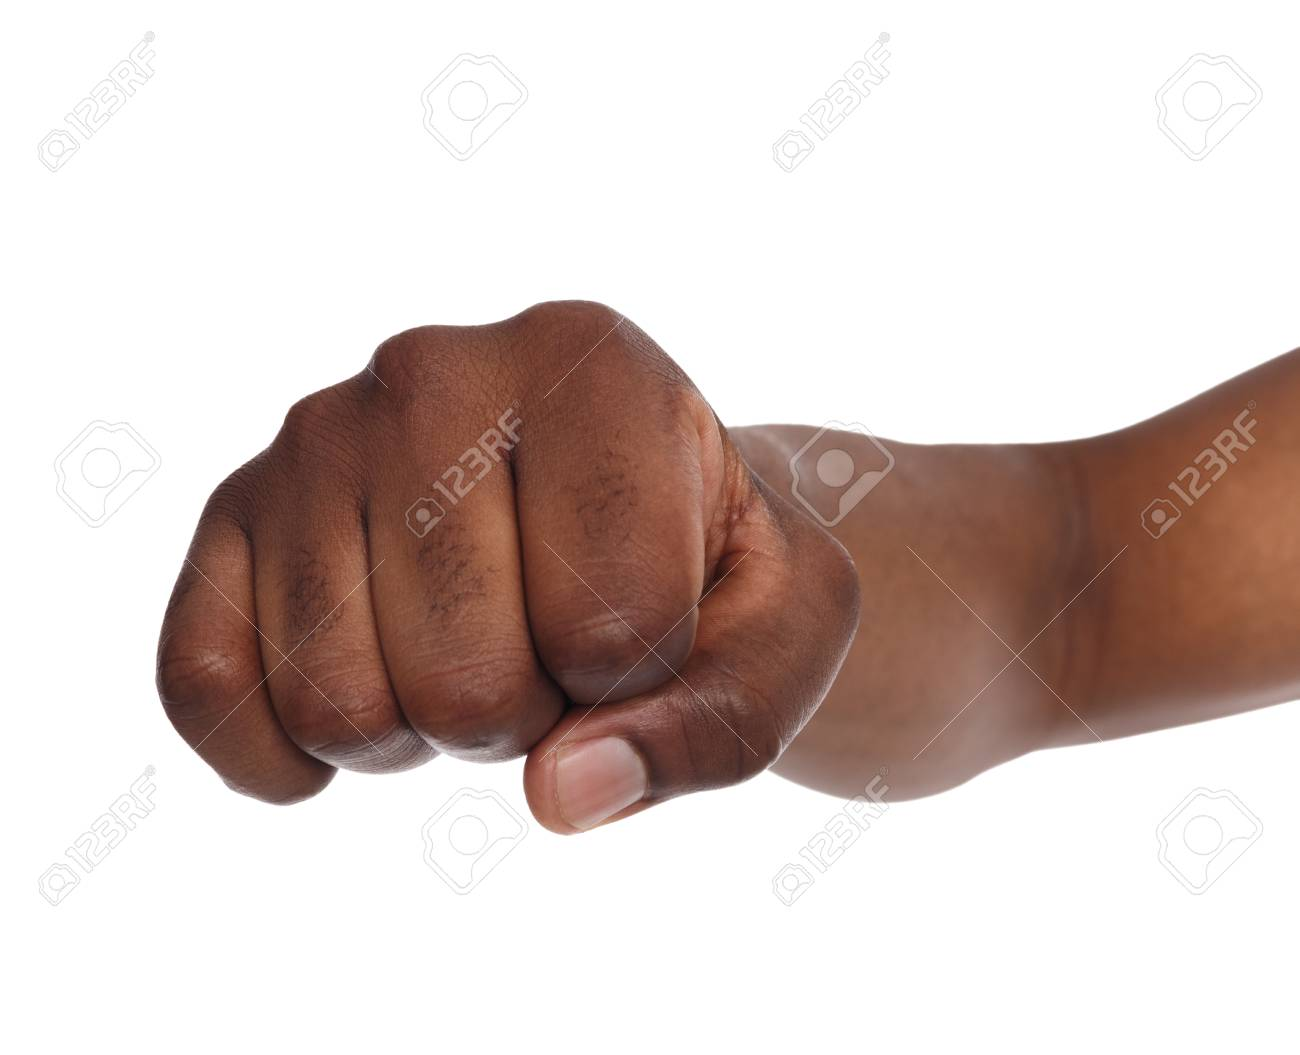 Fight Hand Gesture. Black Man Clenched Fist, Ready To Punch,.. Stock Photo,  Picture And Royalty Free Image. Image 78572418.